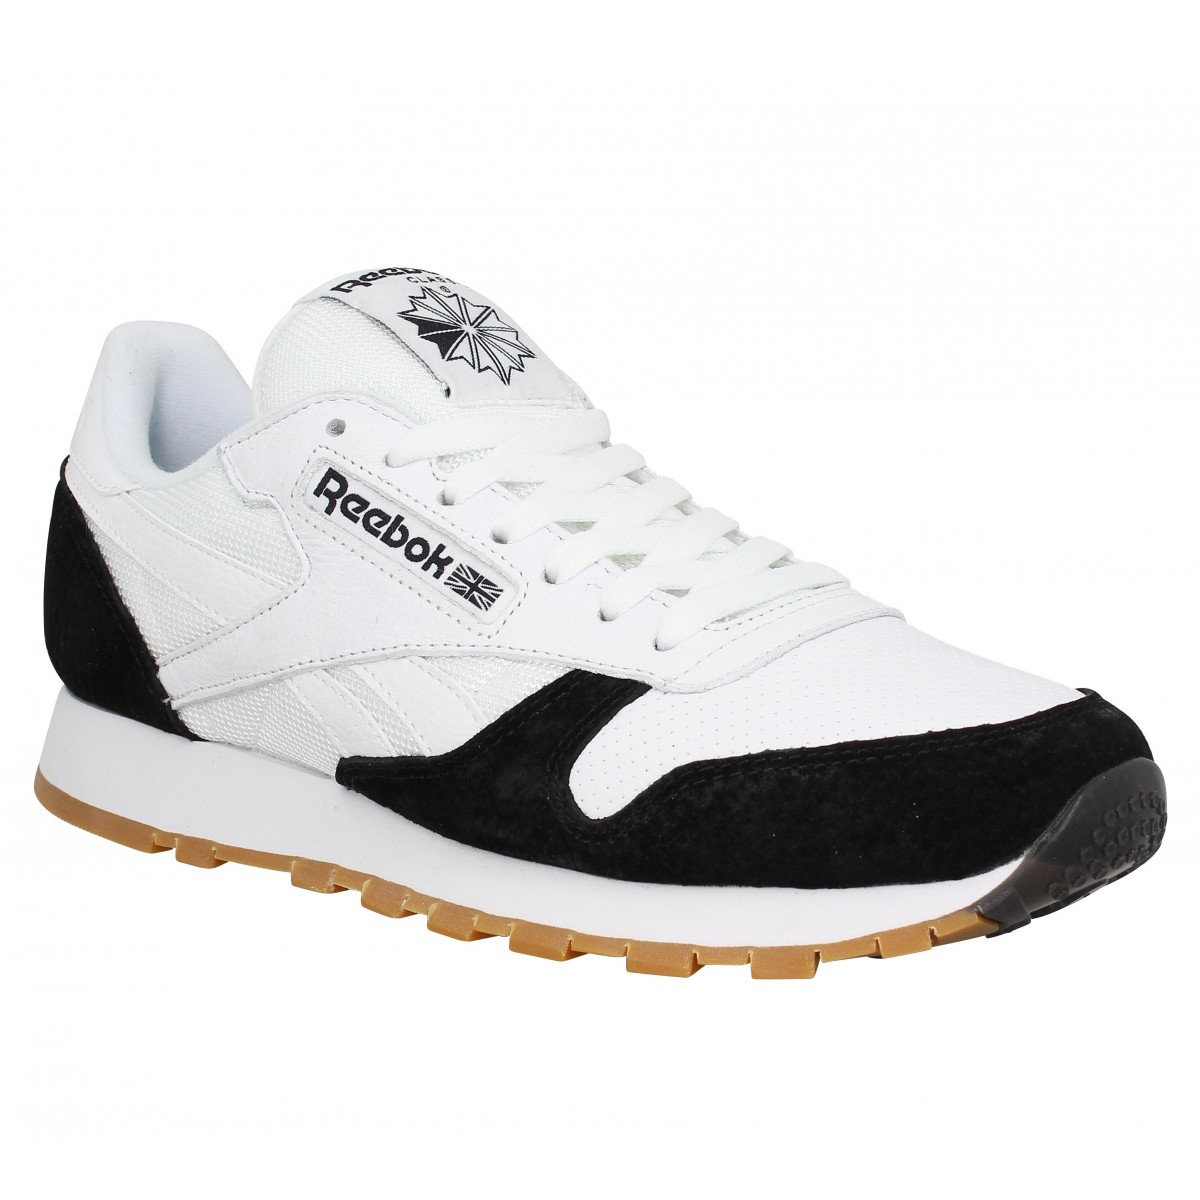 Baskets REEBOK Classic Leather SPP Blanc Noir